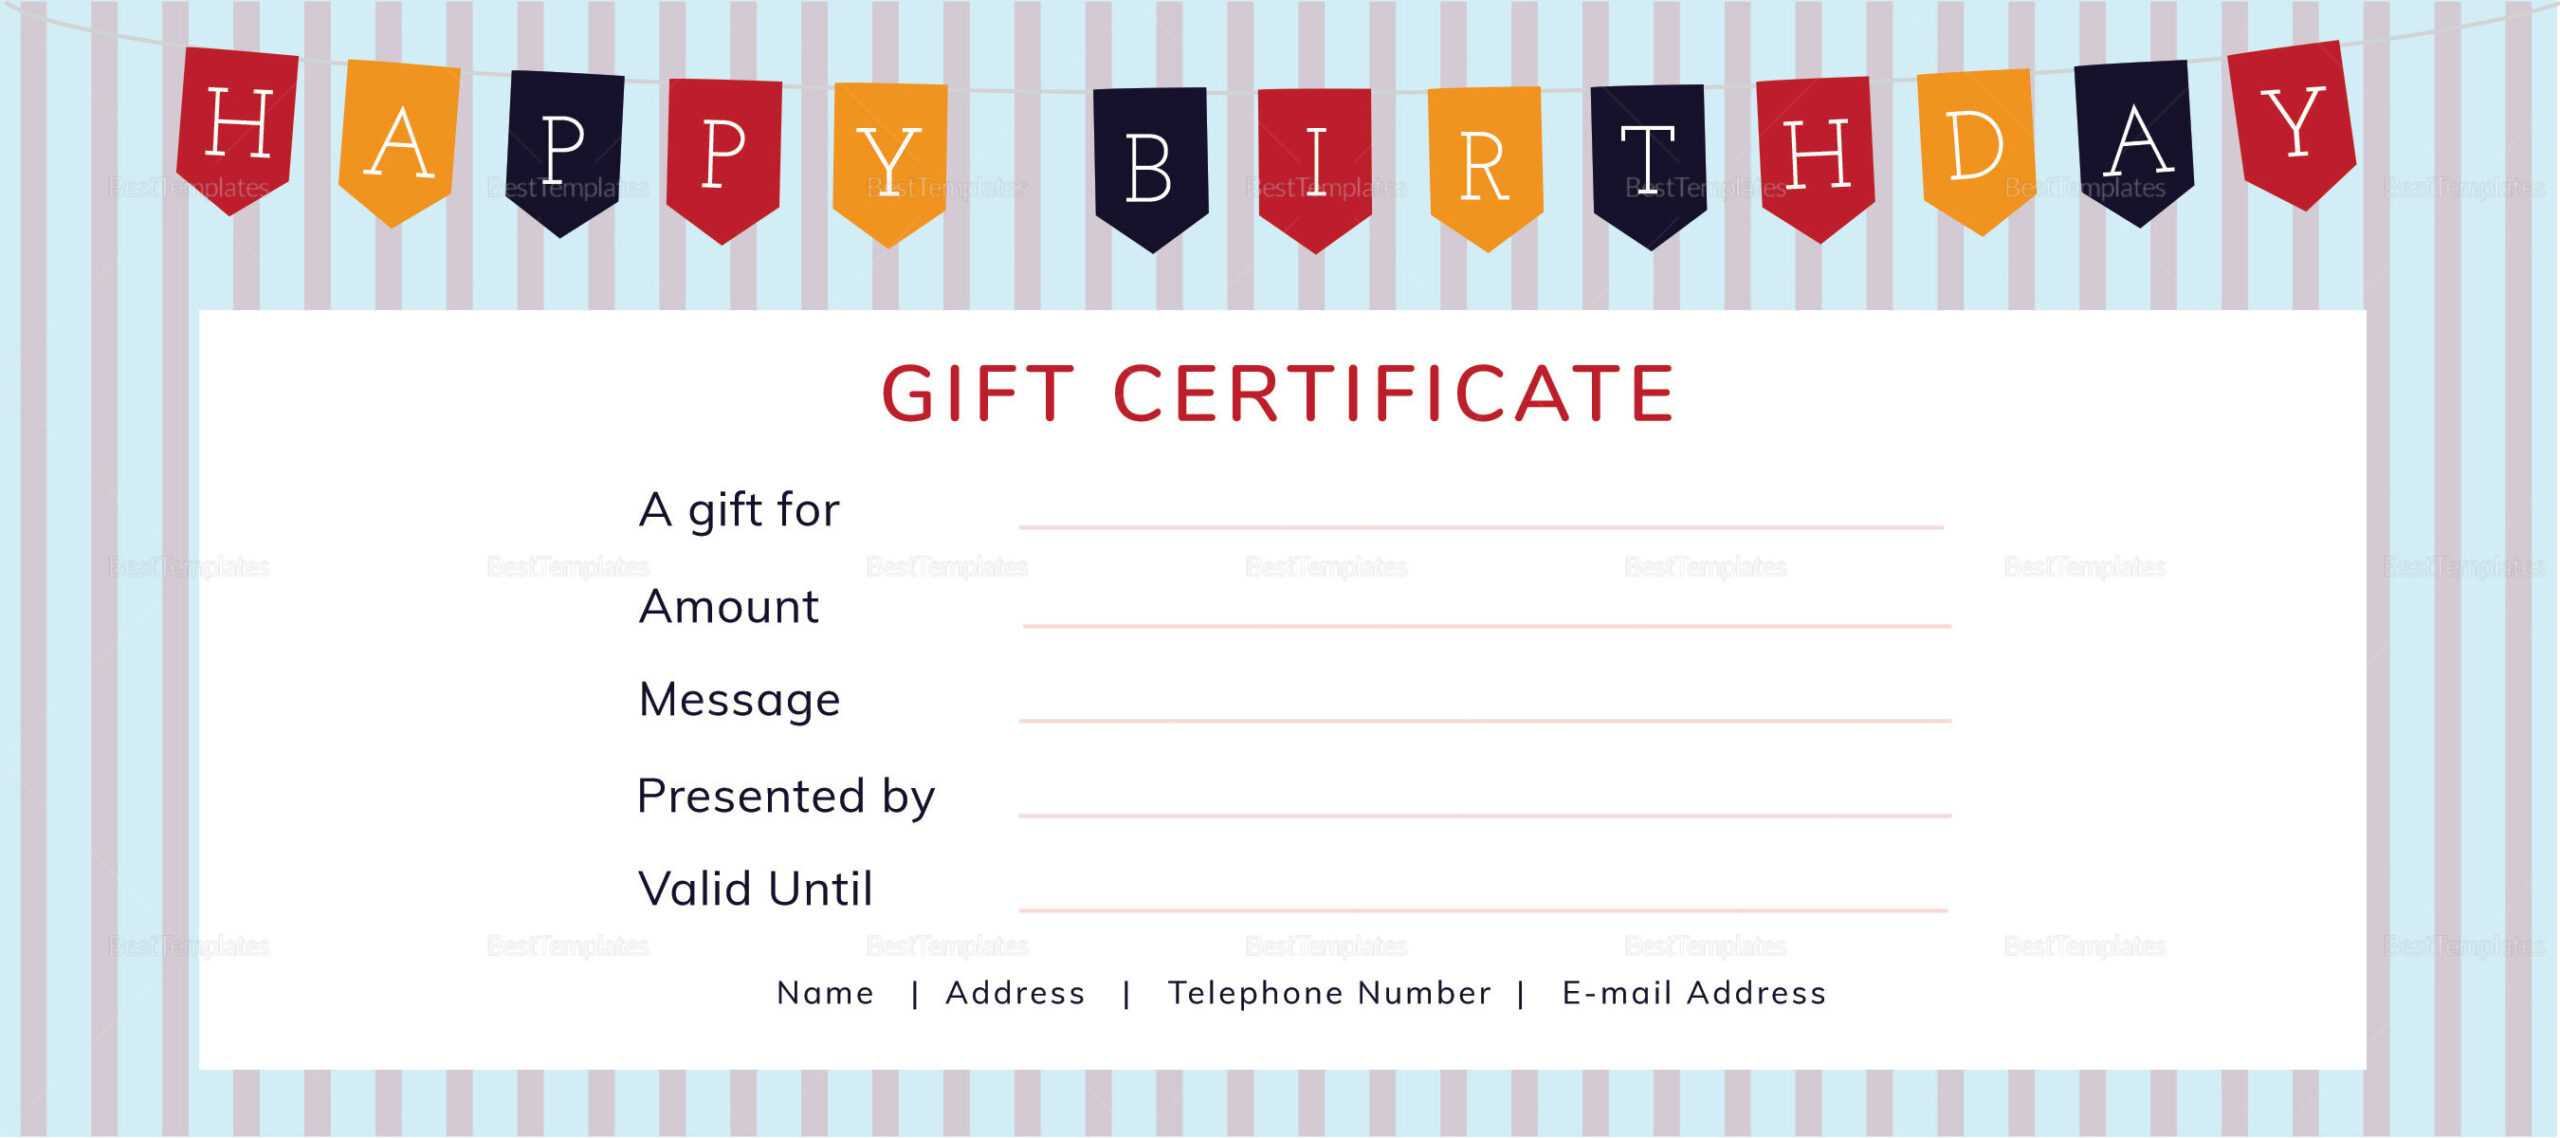 Happy Birthday Gift Certificate Template with regard to Indesign Gift Certificate Template